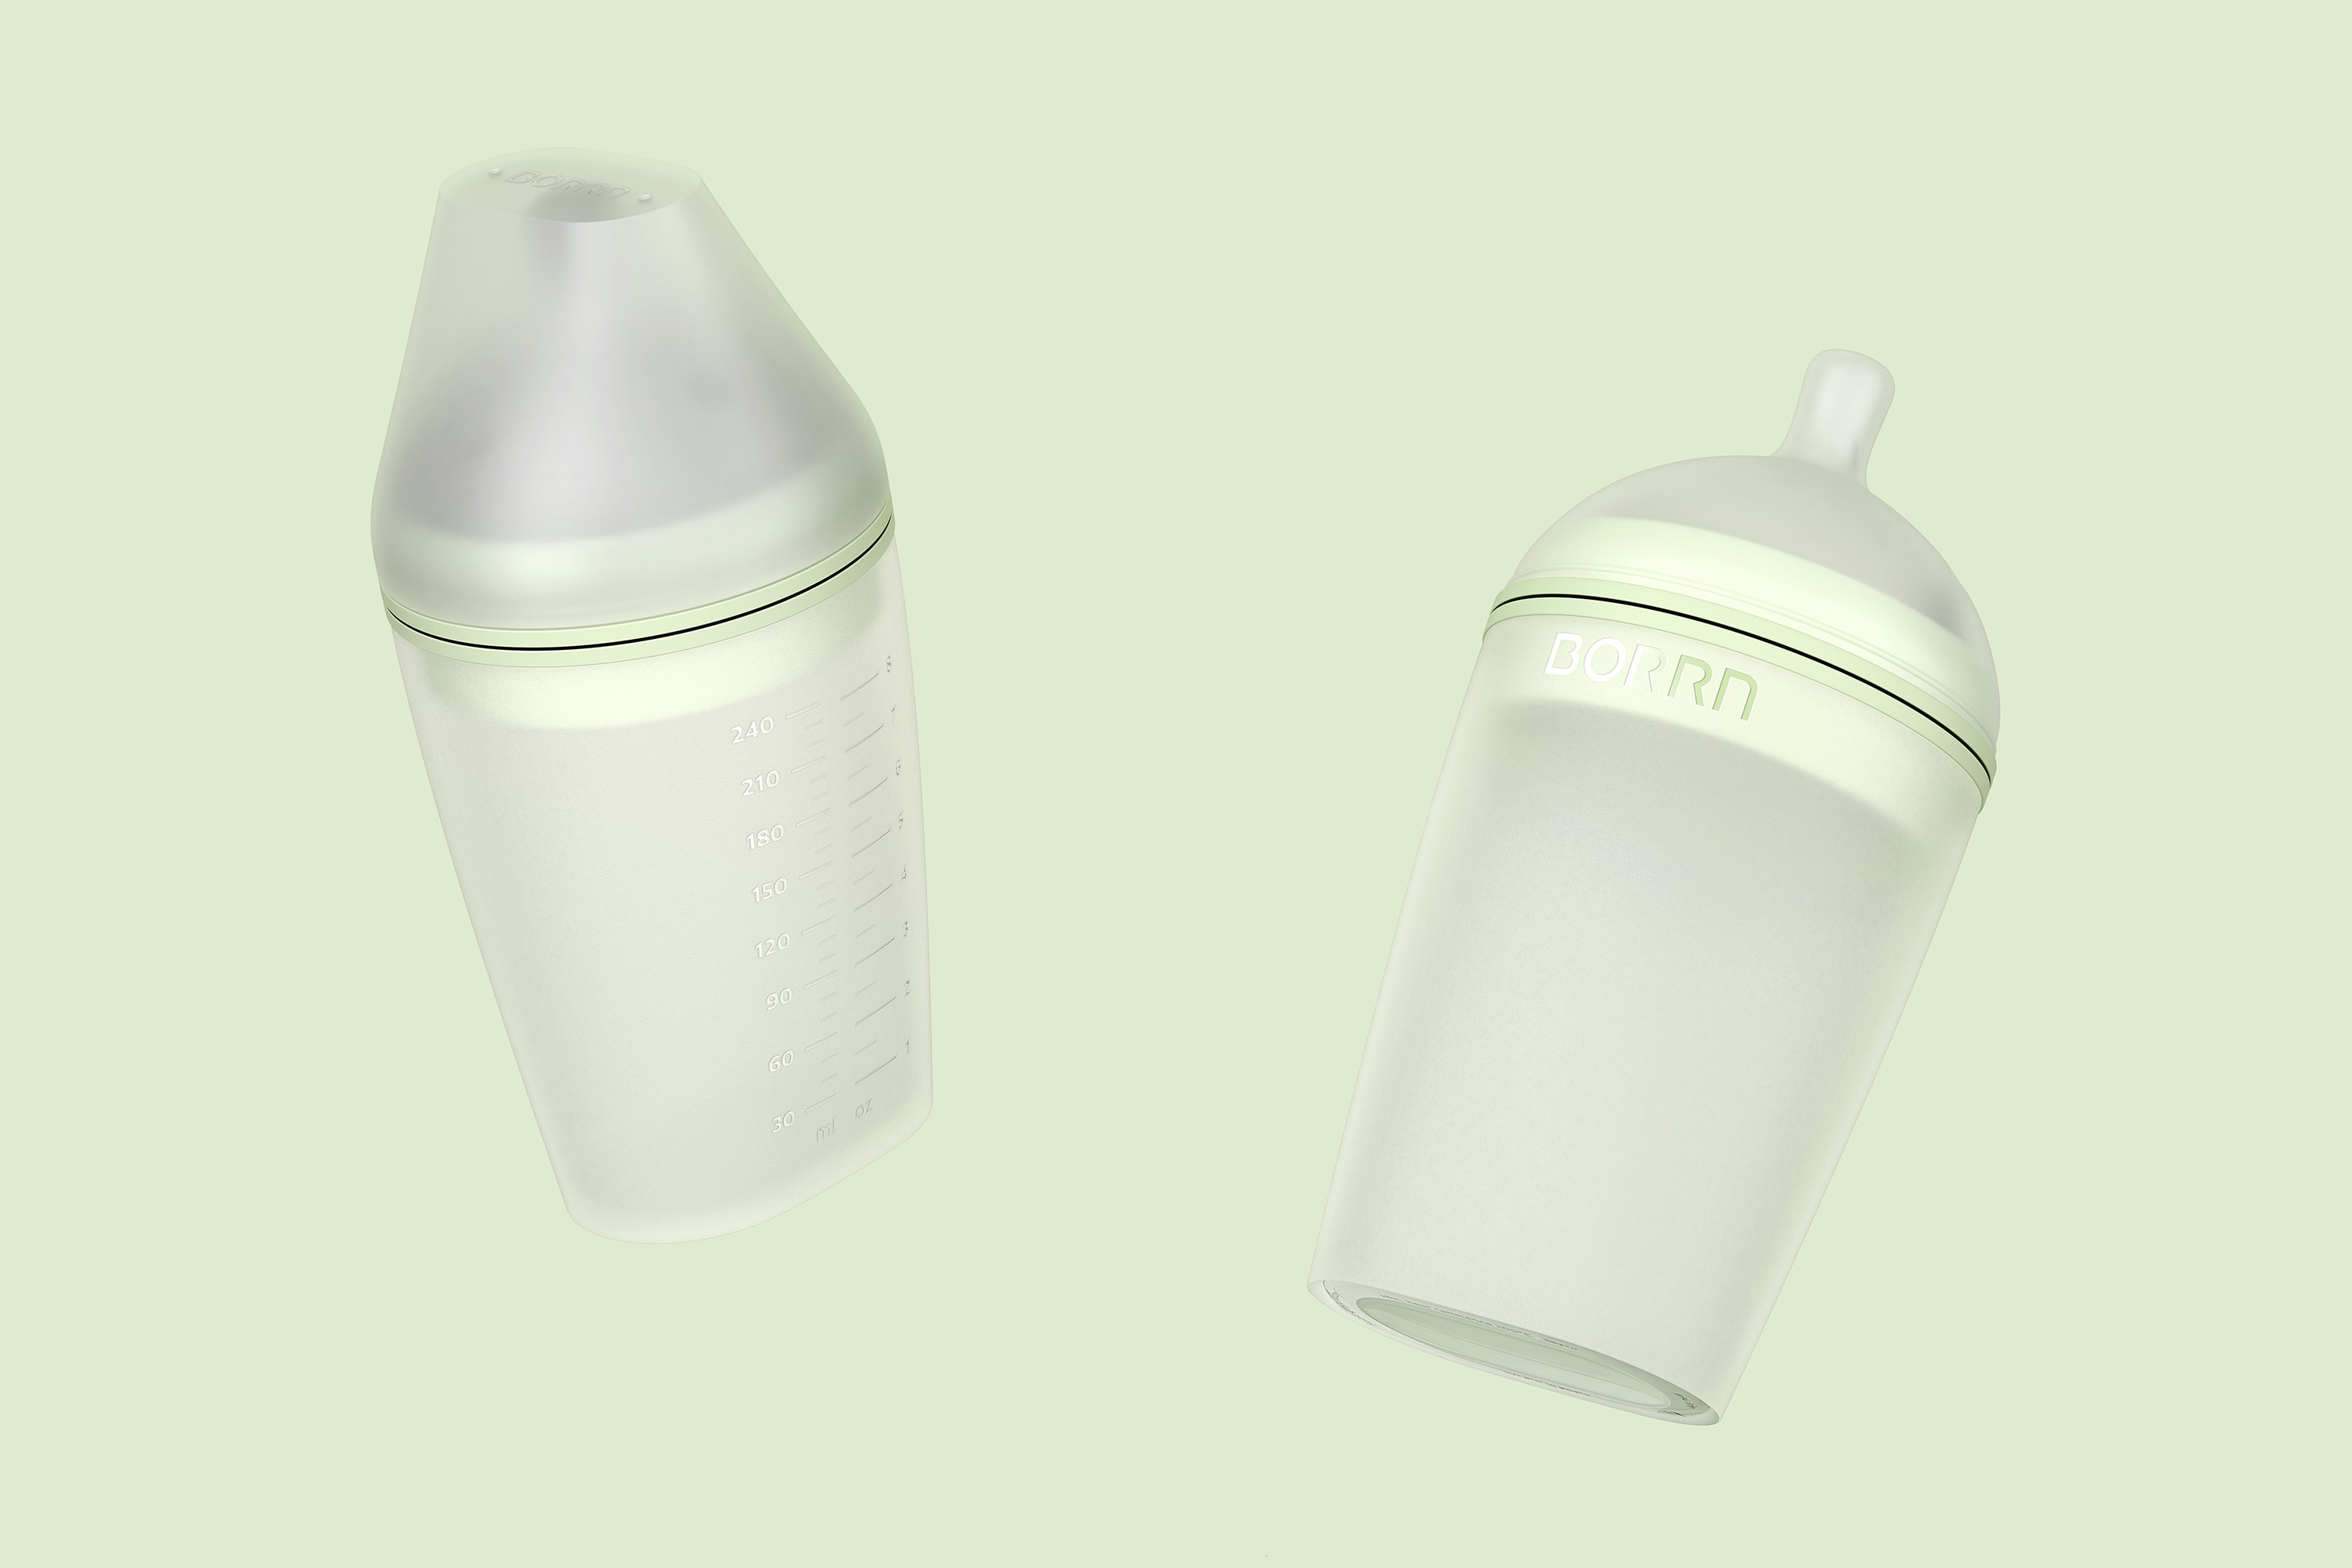 Perspective view of two large Borrn Bottles in green against a green background. One of the bottles had a lid on and shows the capacity markings, the other shows the teat and Borrn logo.